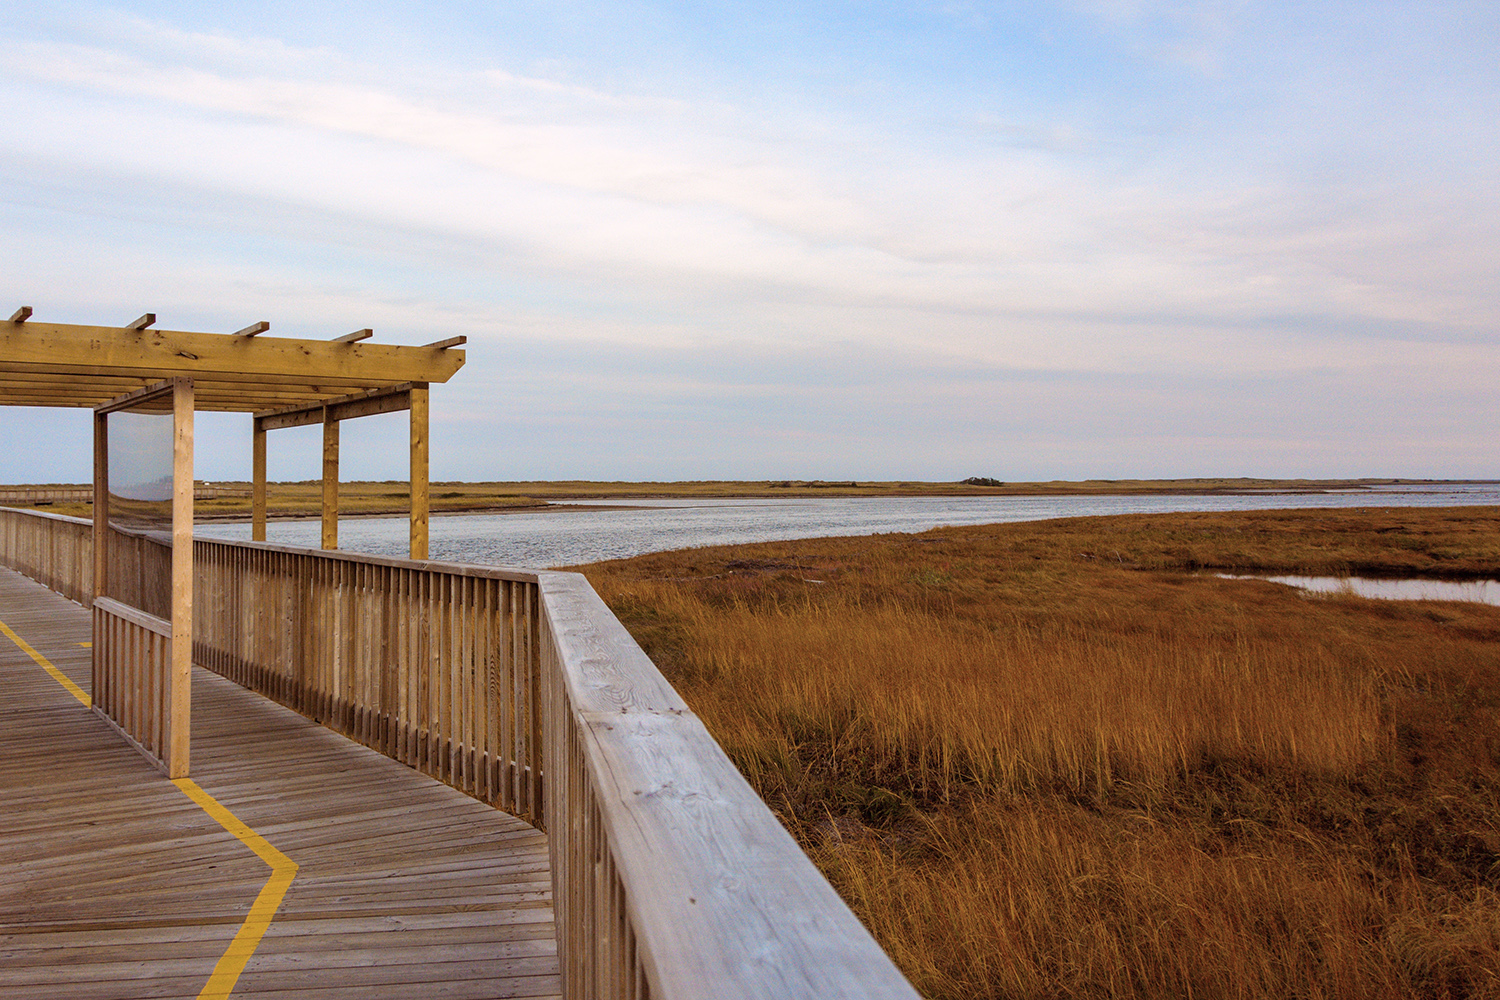 This boardwalk at Kelly's Beach takes you over lagoons, salt marshes, and dunes.